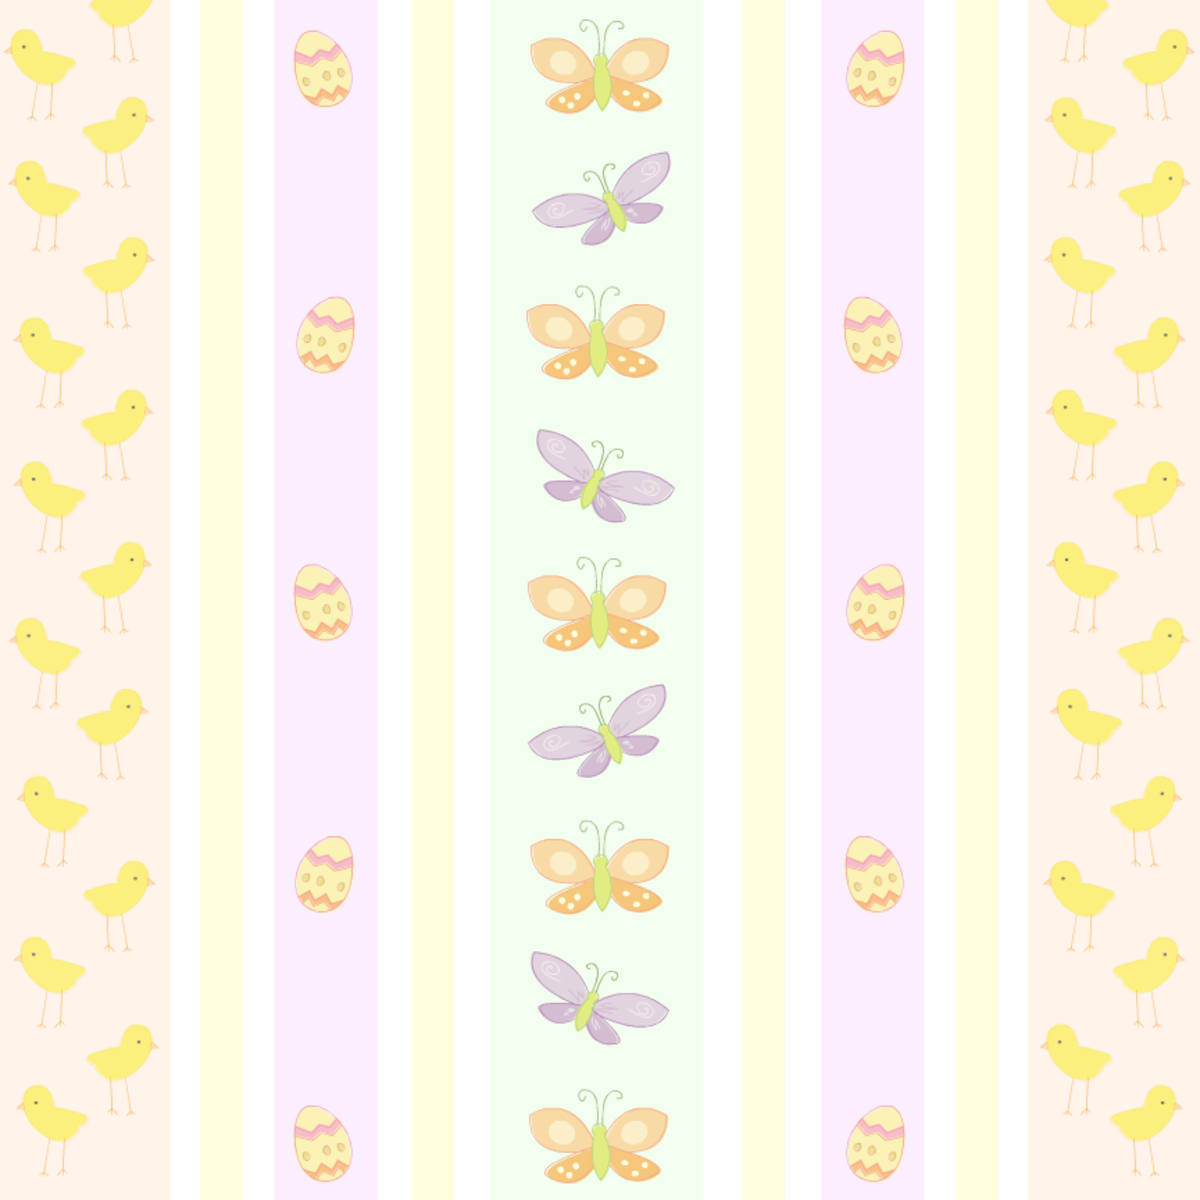 Premade scrapbook pages: Pastel butterflies, baby chicks and Easter eggs in a striped pattern